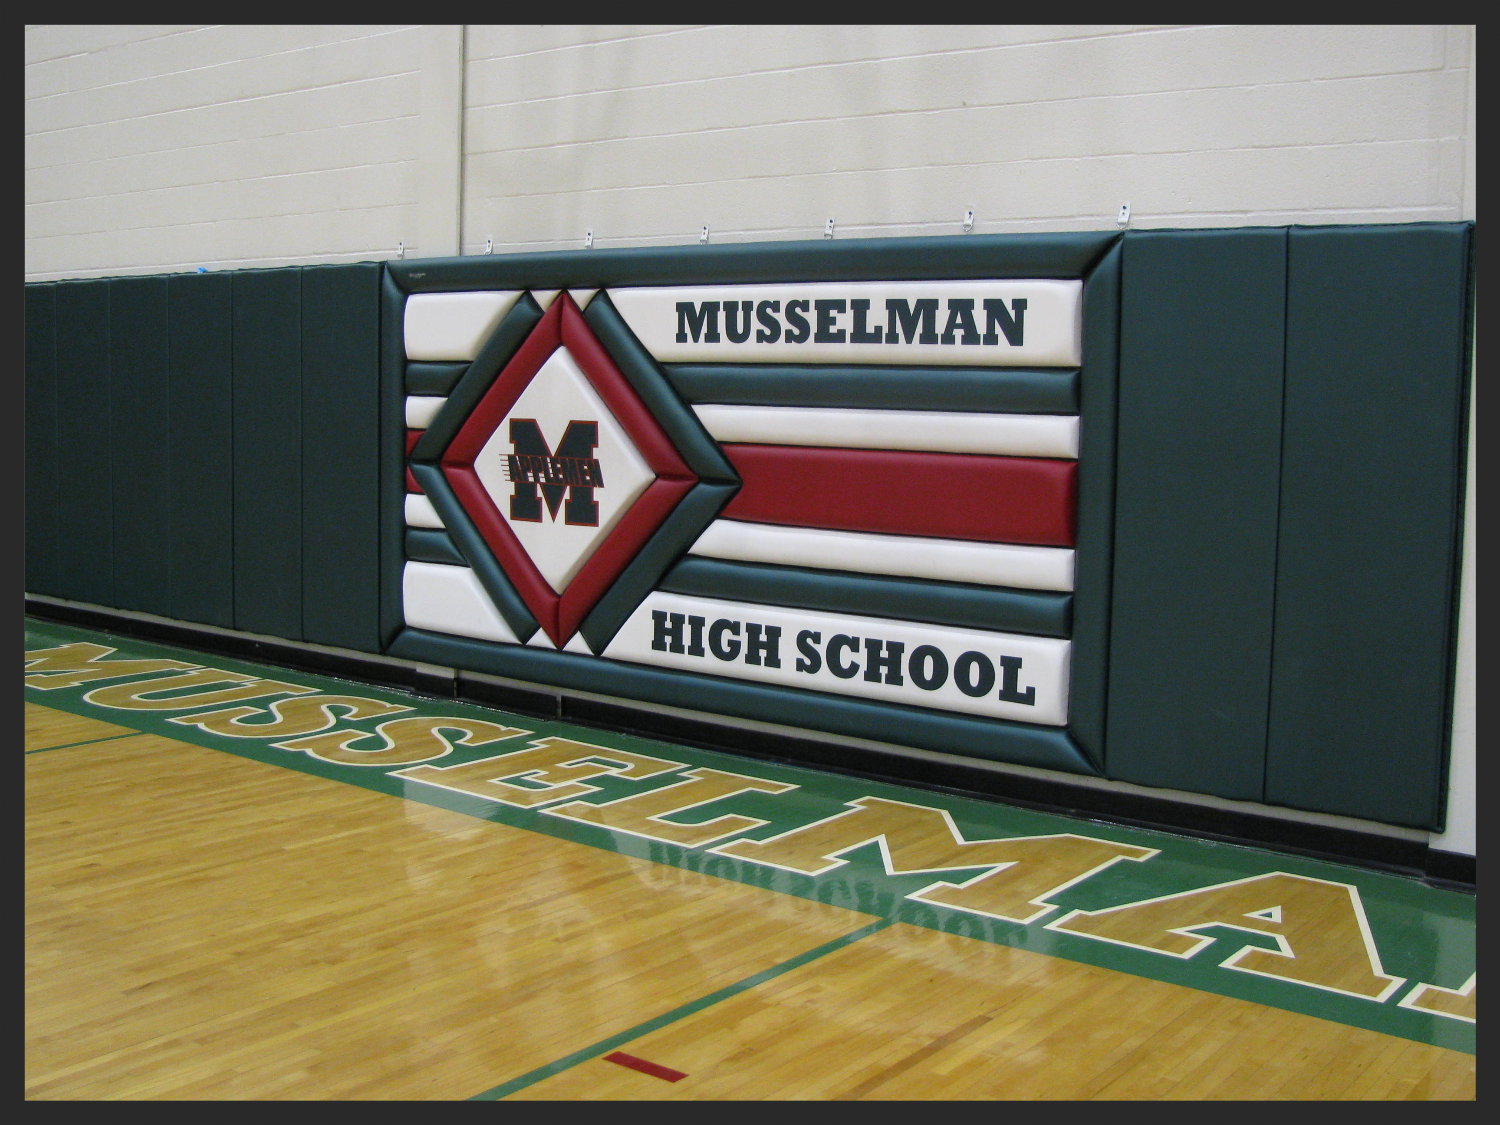 Musselman High School